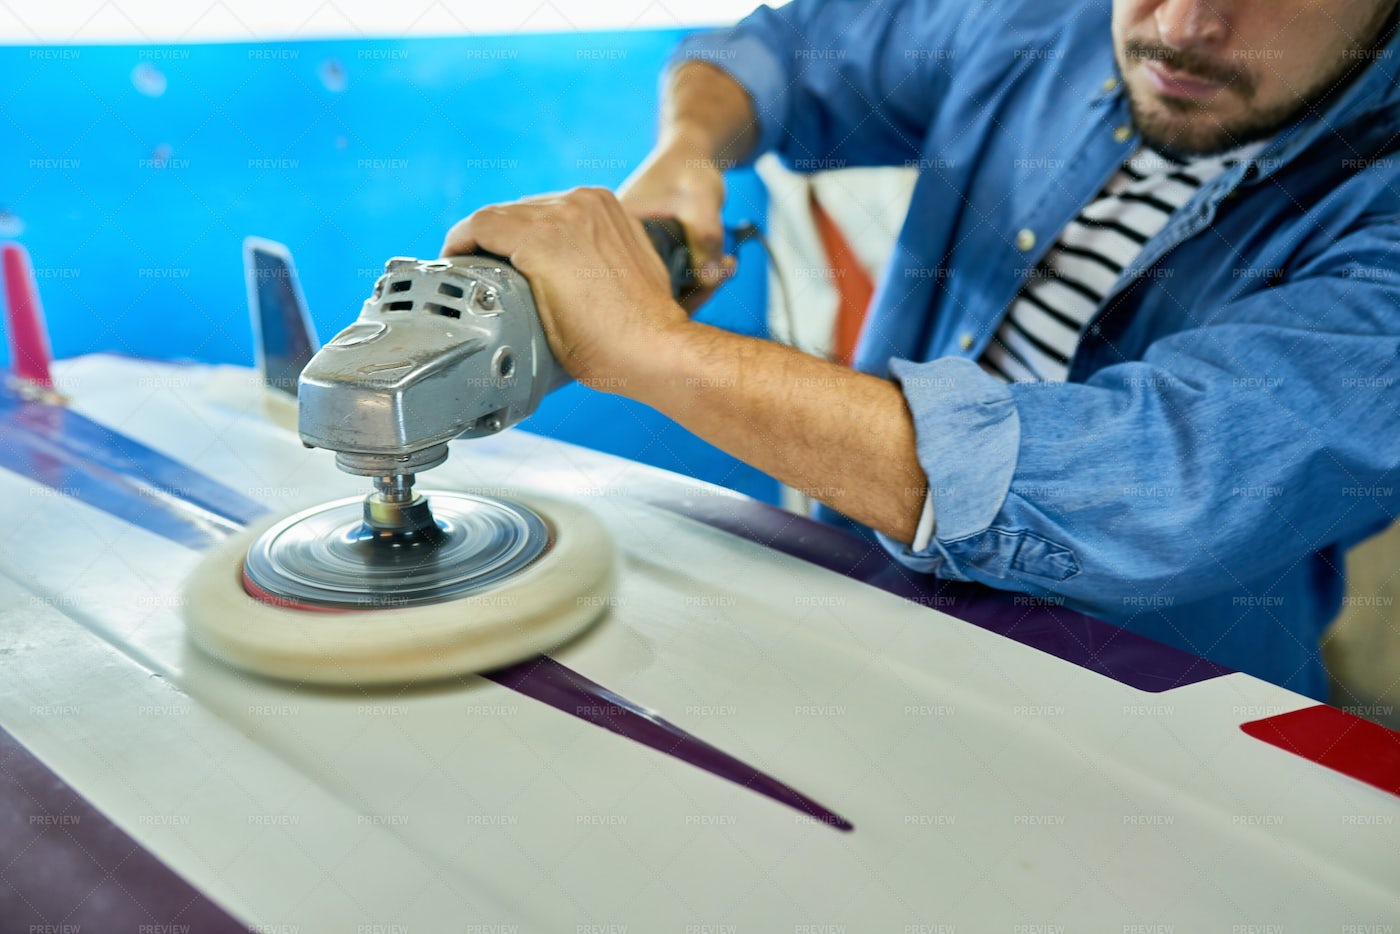 Tanned Man Polishing Surfing Board...: Stock Photos